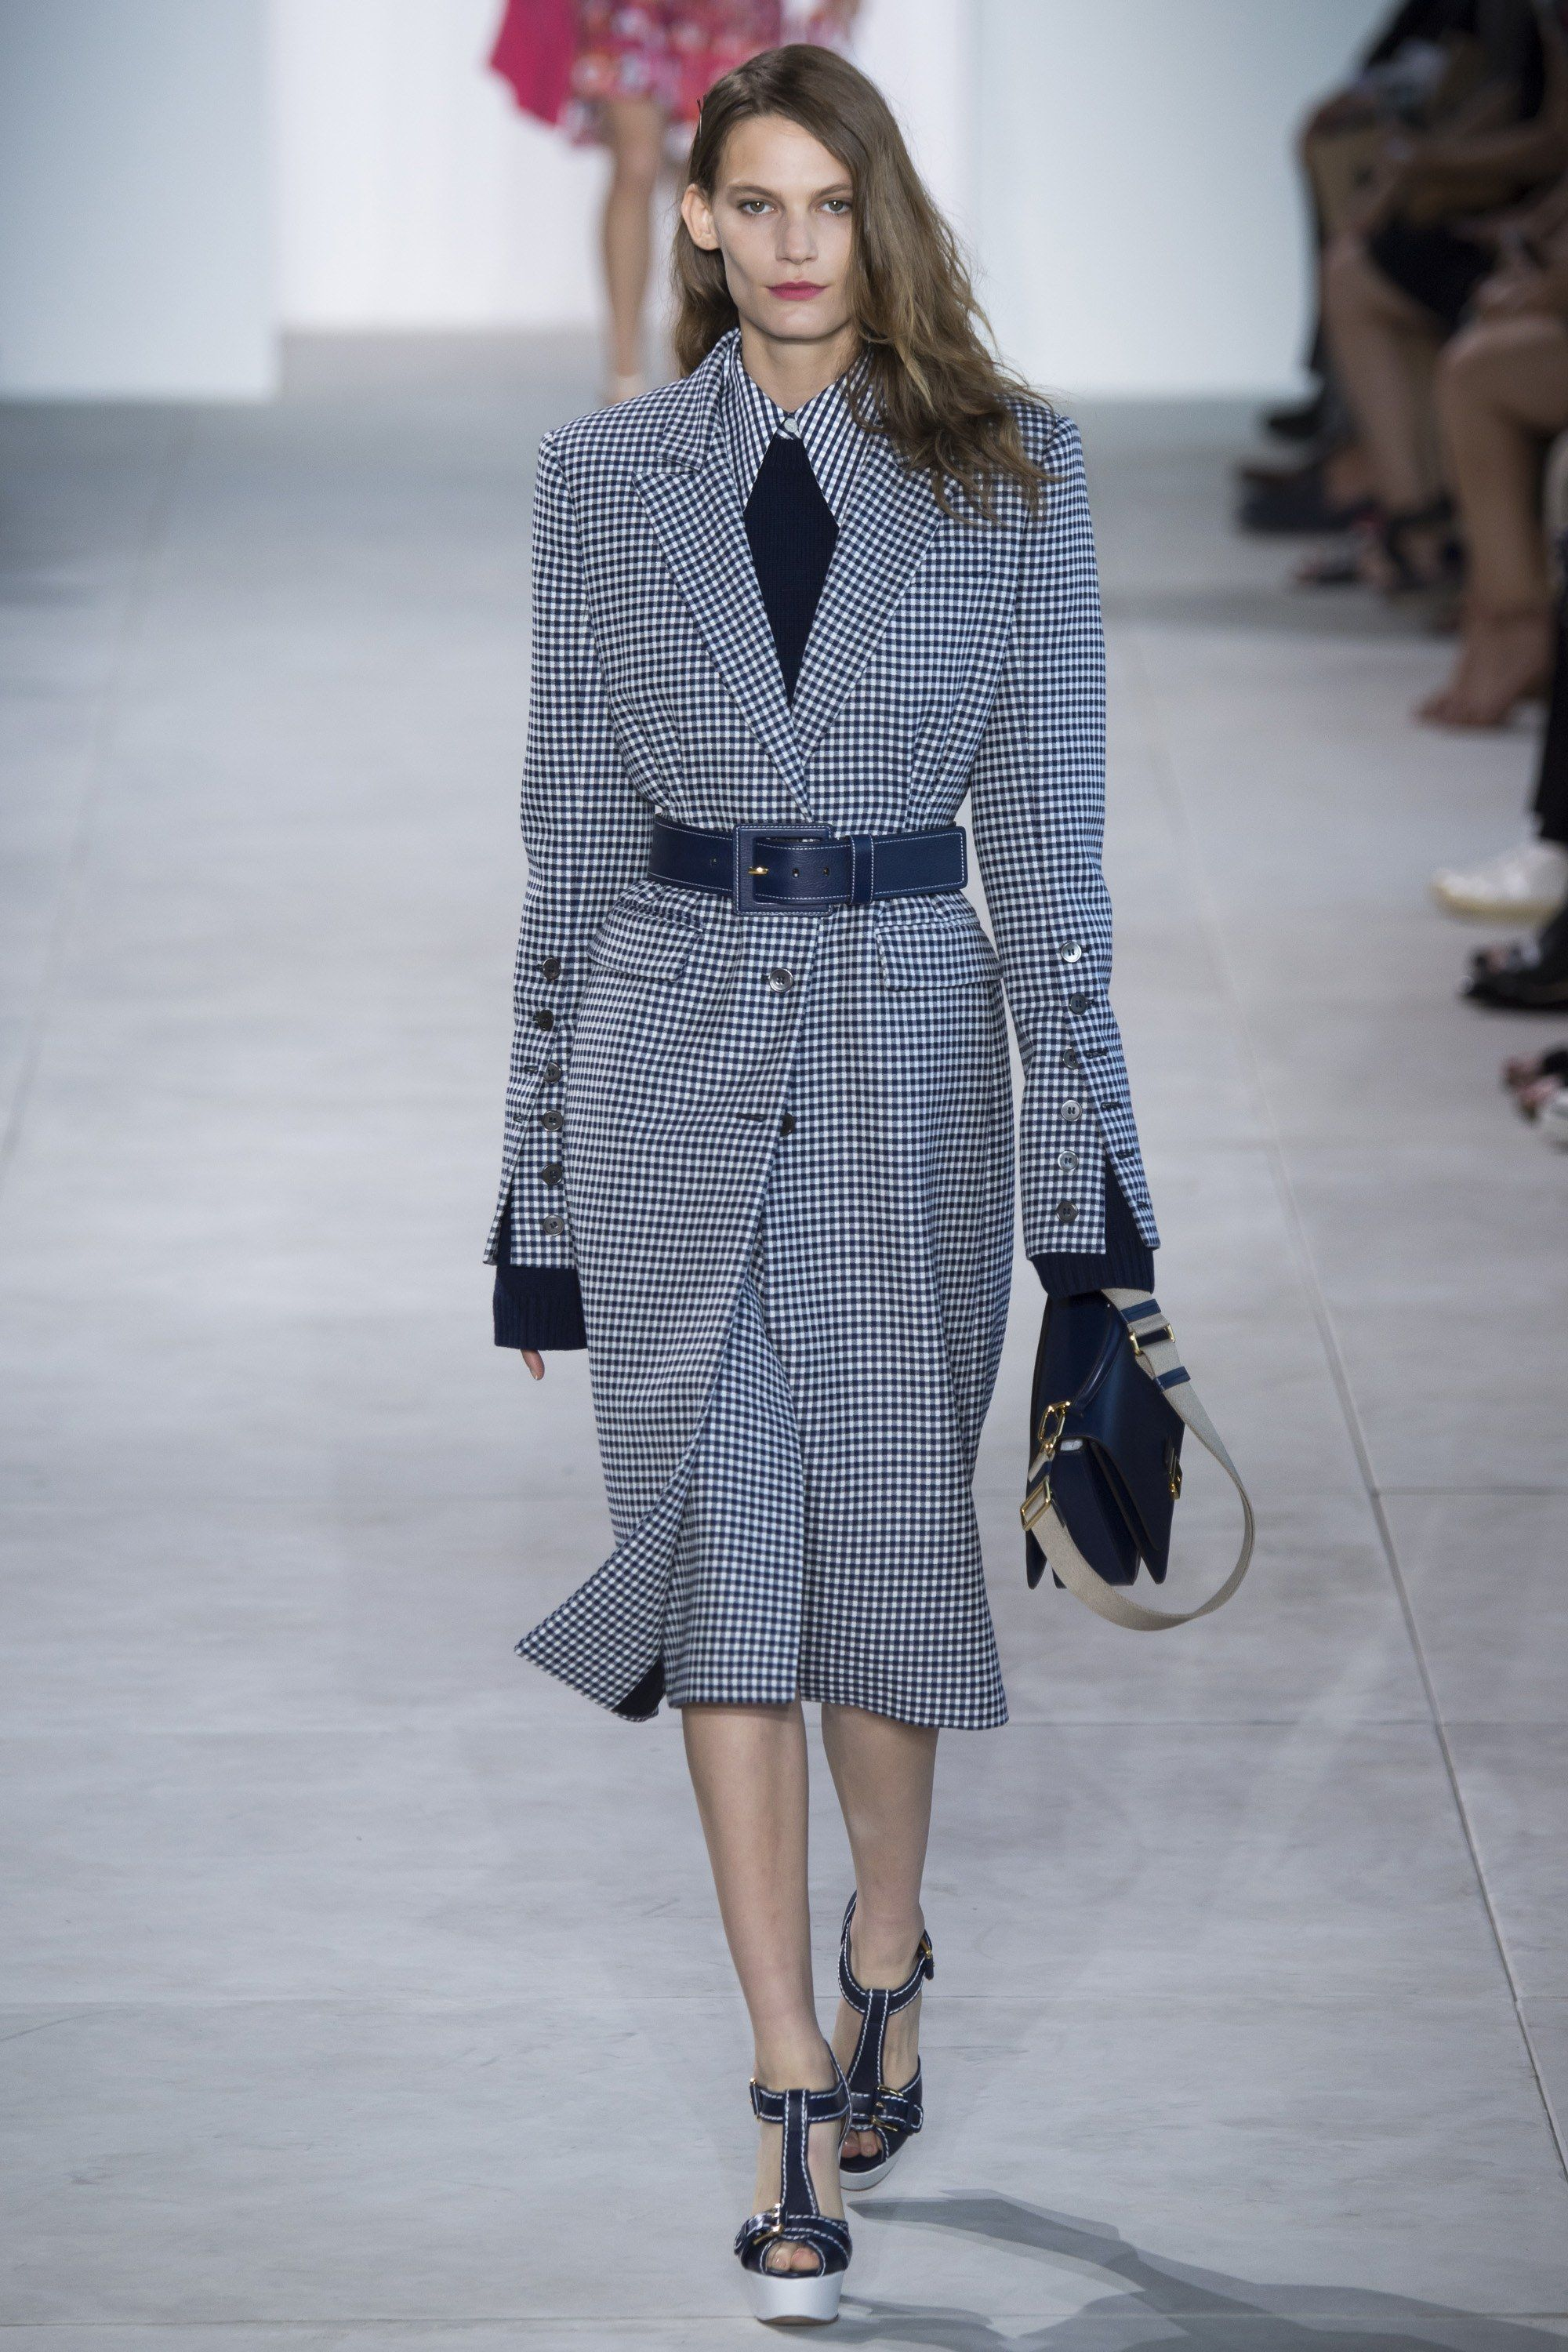 ca8c0b88e7f9 Michael Kors Collection Spring 2017 Ready-to-Wear Fashion Show - Lena Hardt